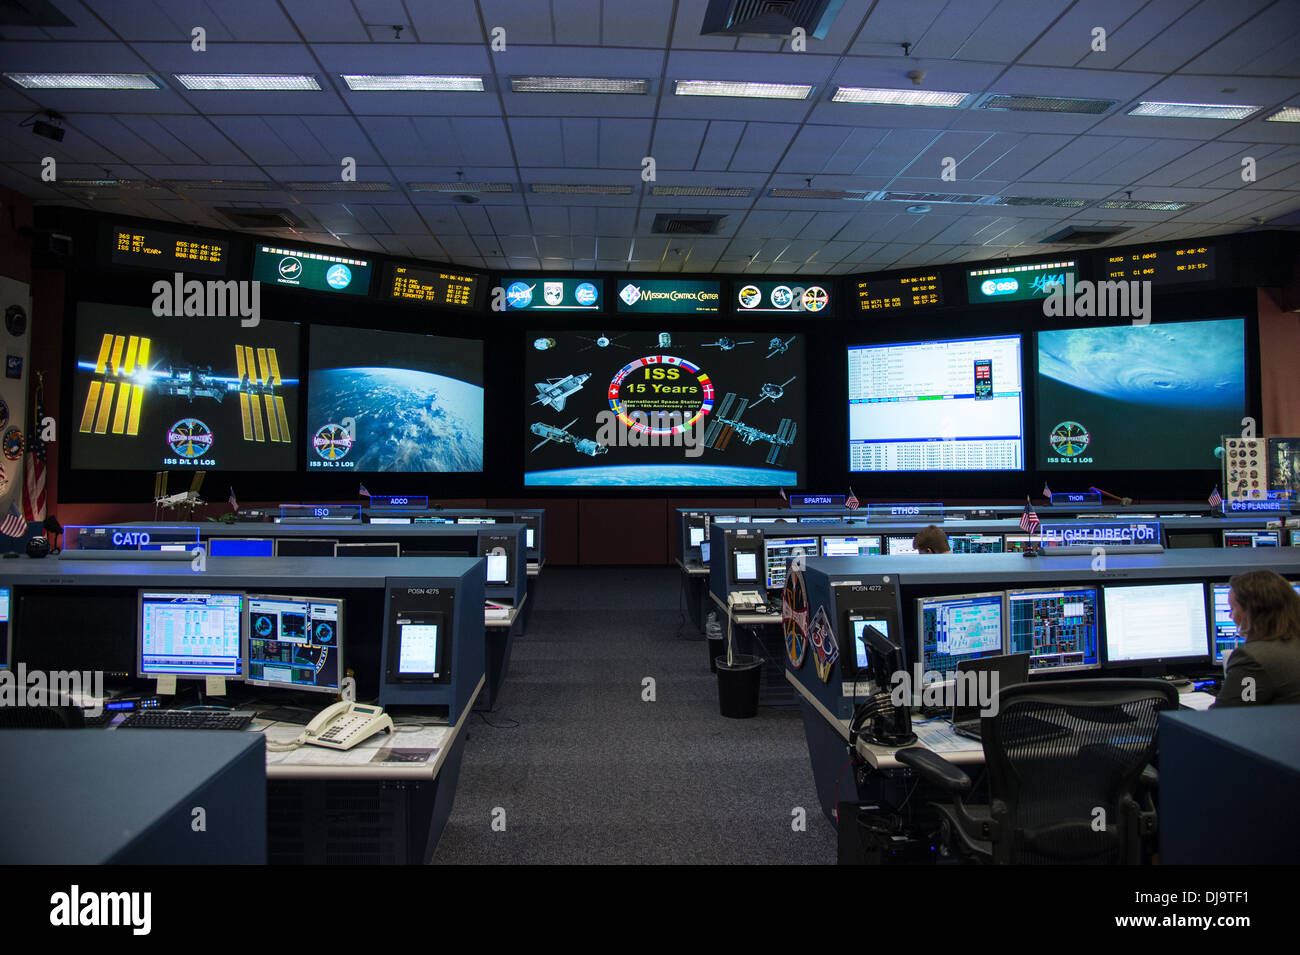 ISS International space station control centre - Stock Image